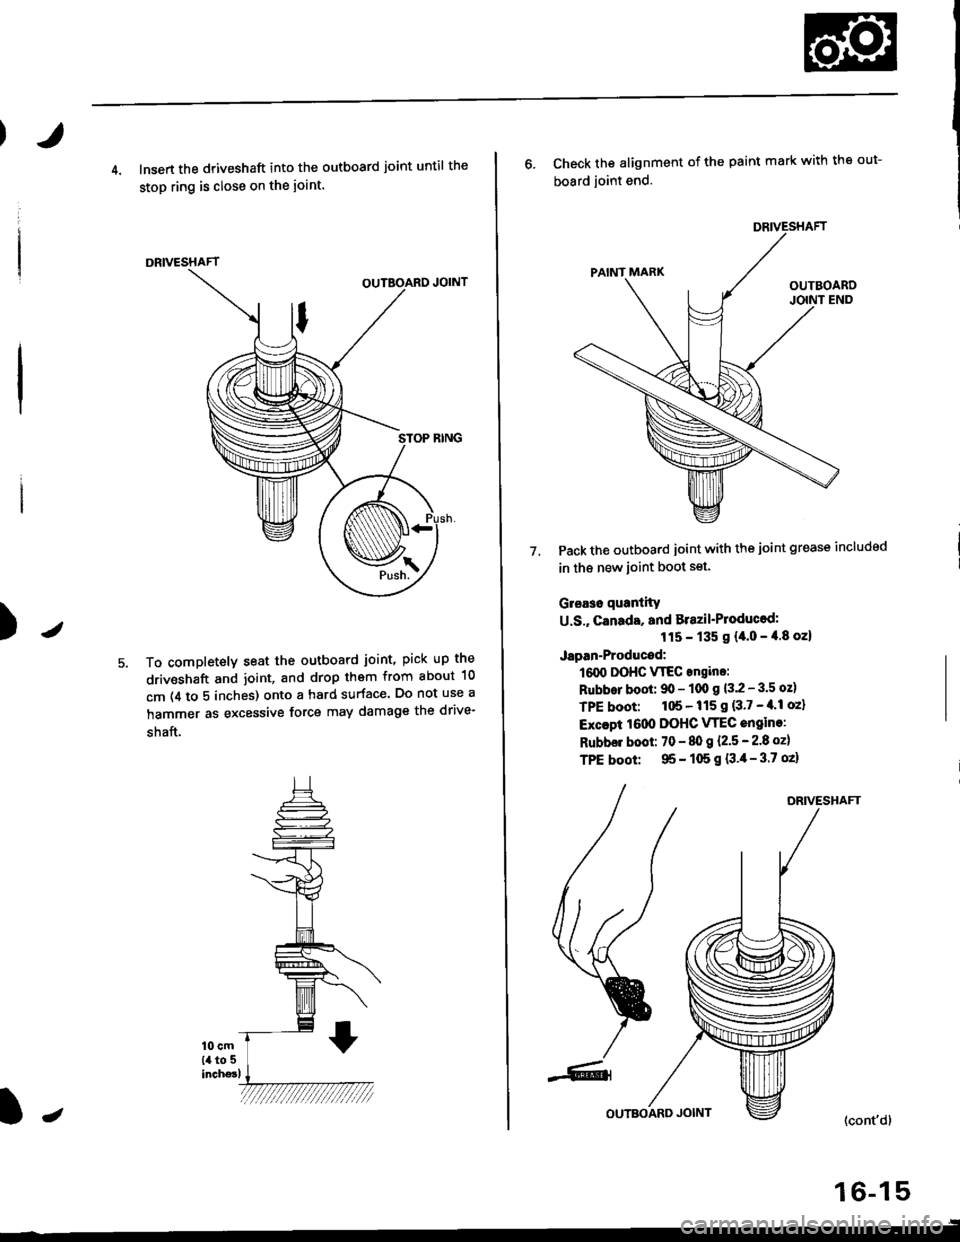 81 Honda Civic Vacuum Diagram. Honda. Auto Wiring Diagram